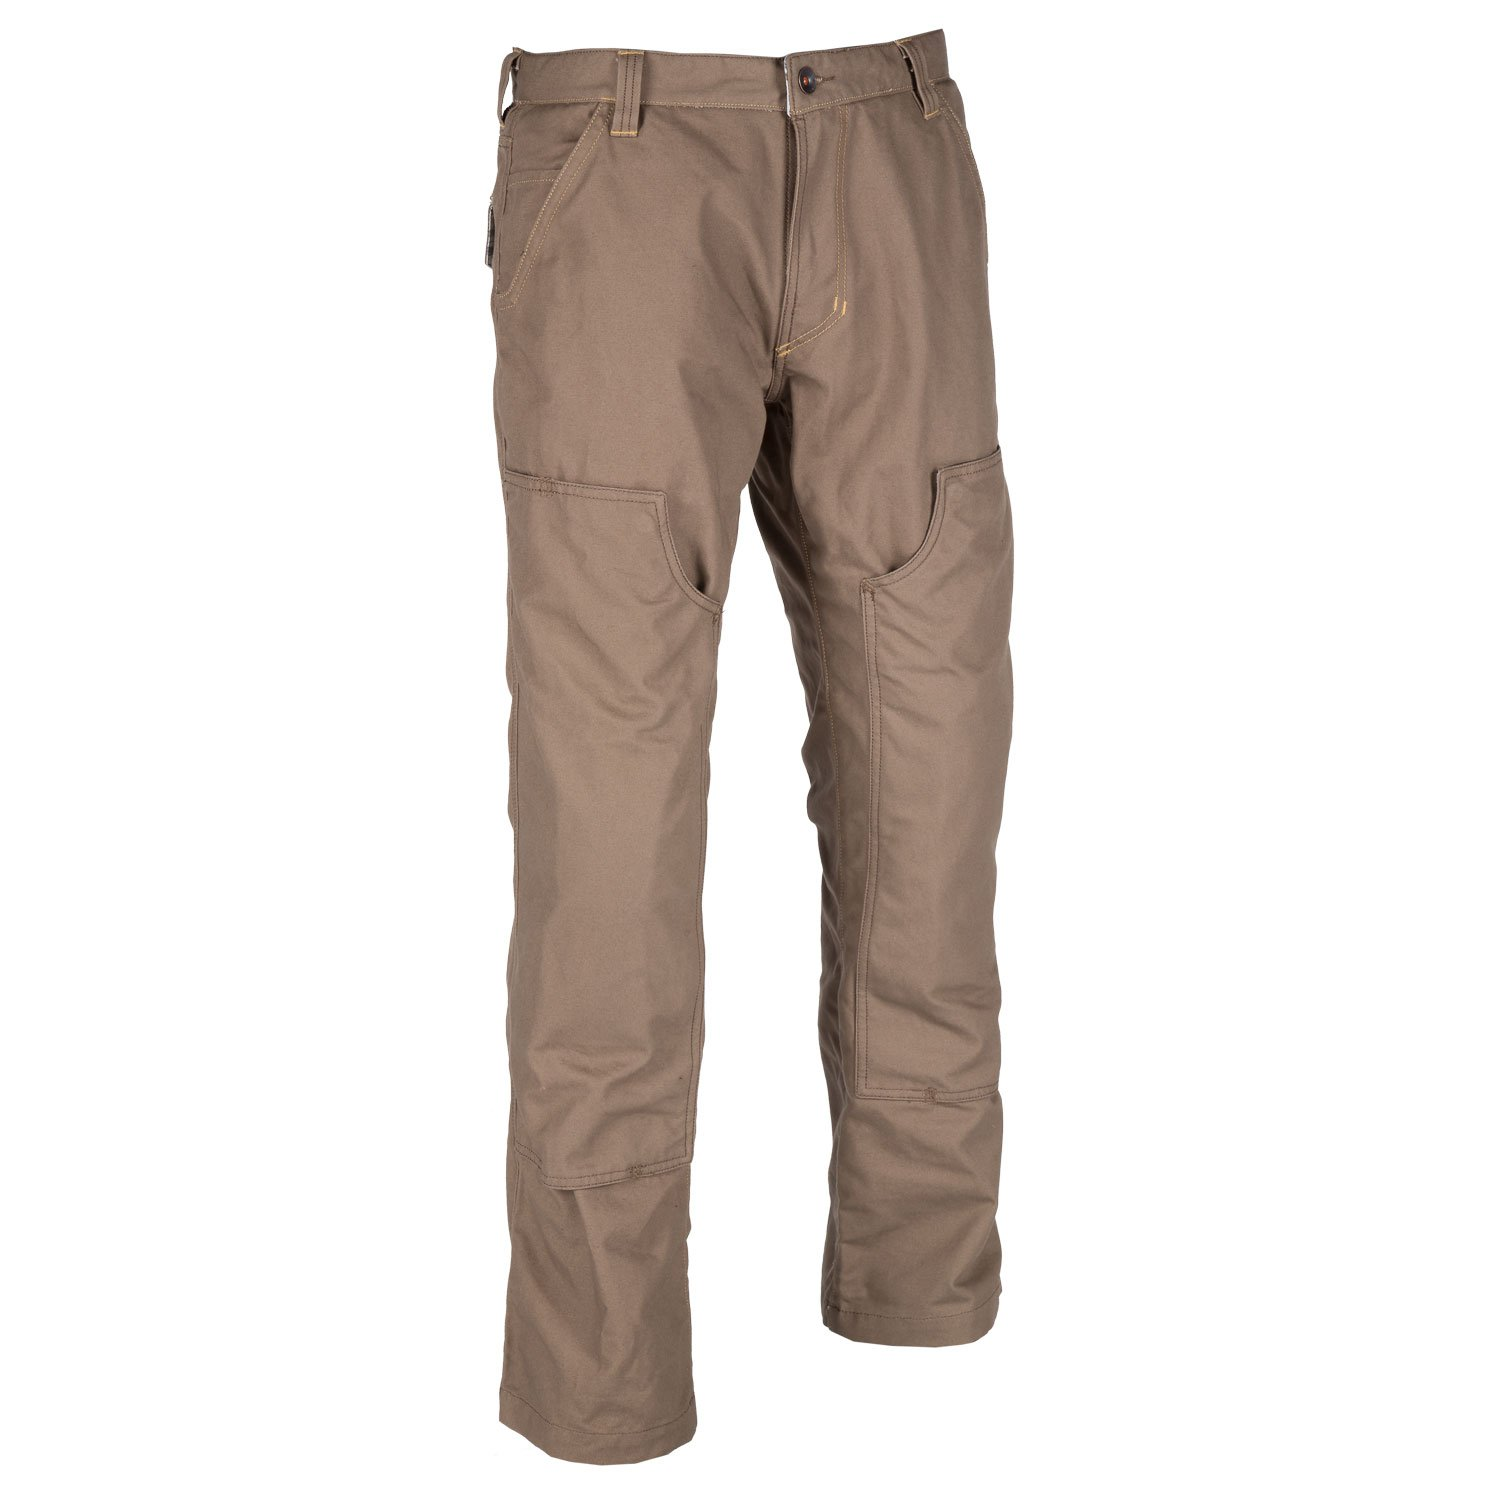 Outrider Pant 36 Dark Brown